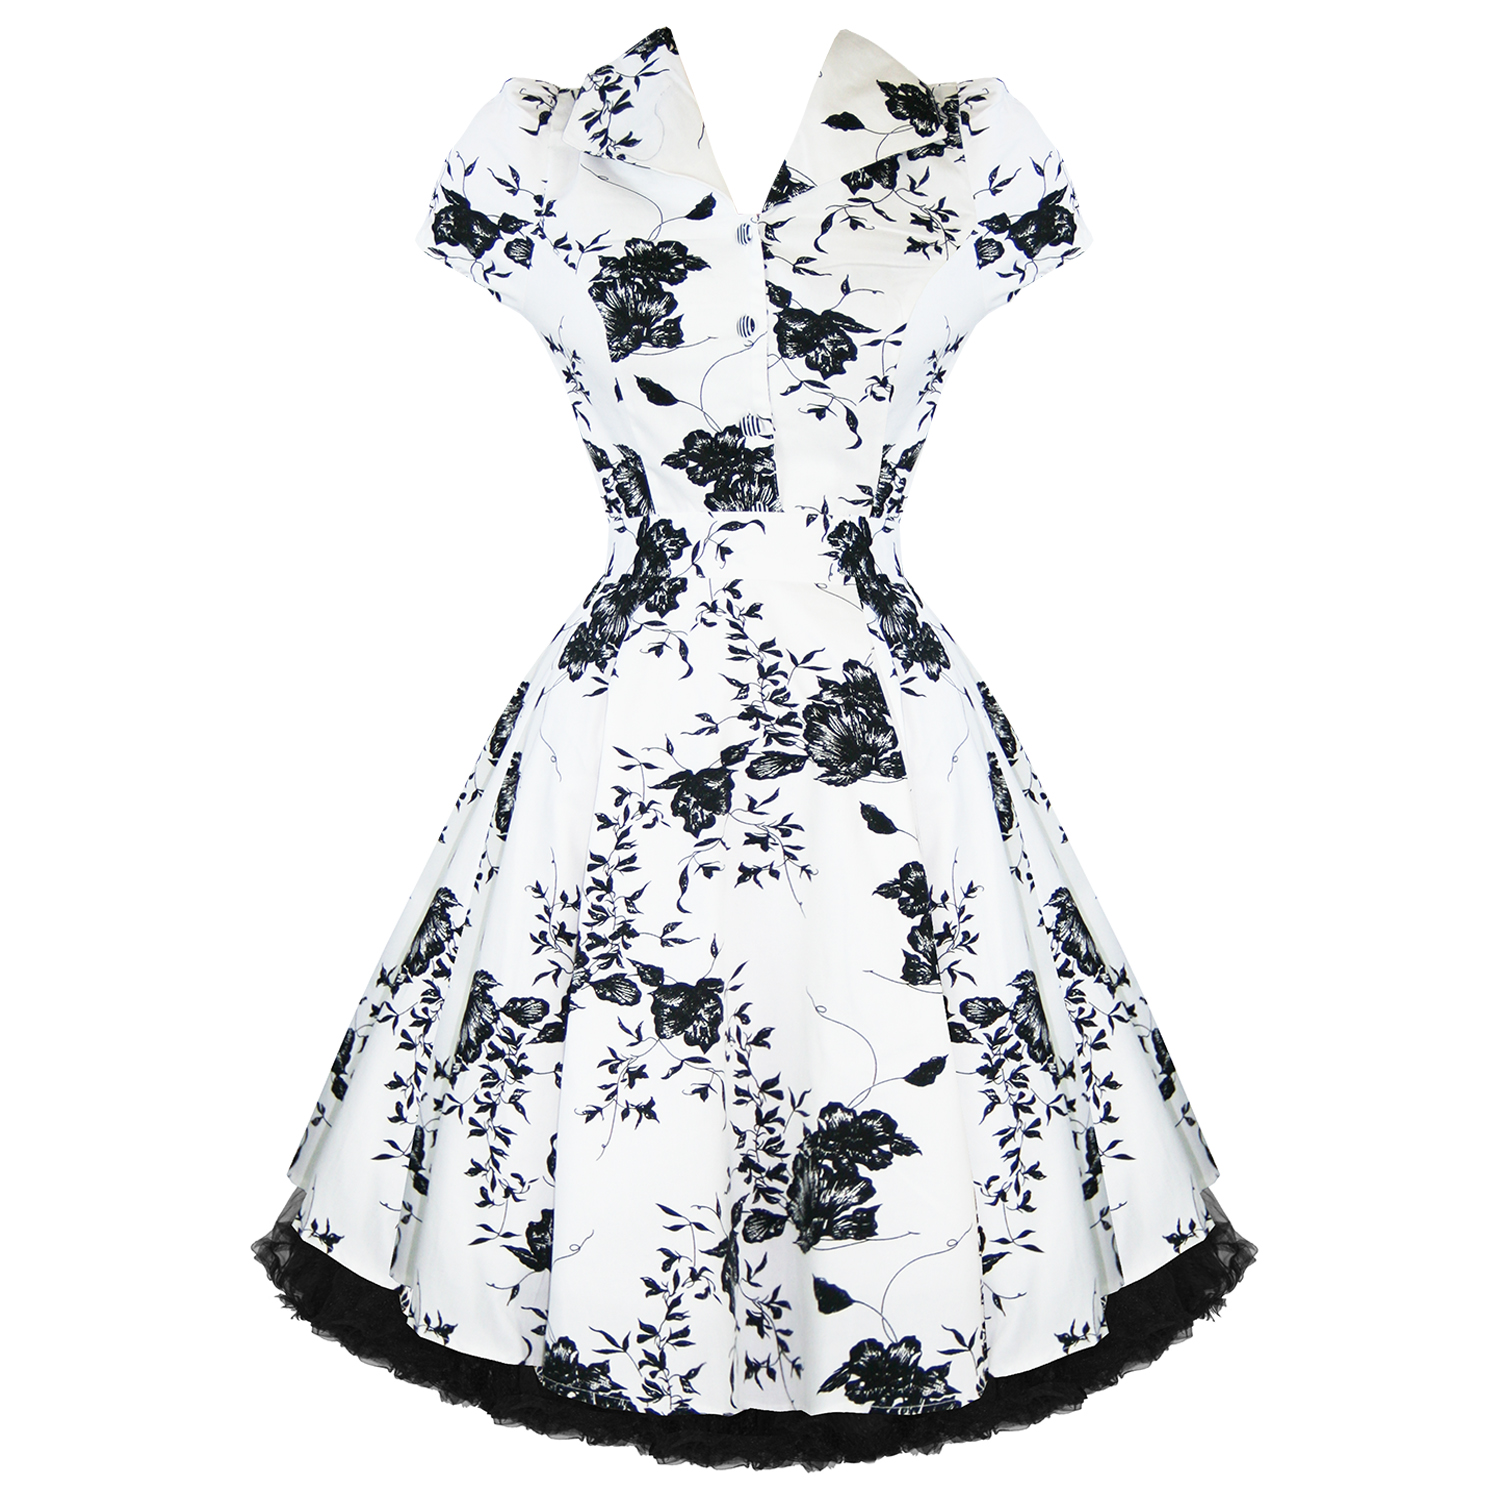 LADIES-WHITE-FLORAL-VINTAGE-50S-RETRO-ROCKABILLY-PARTY-PROM-SWING-TEA-DRESS